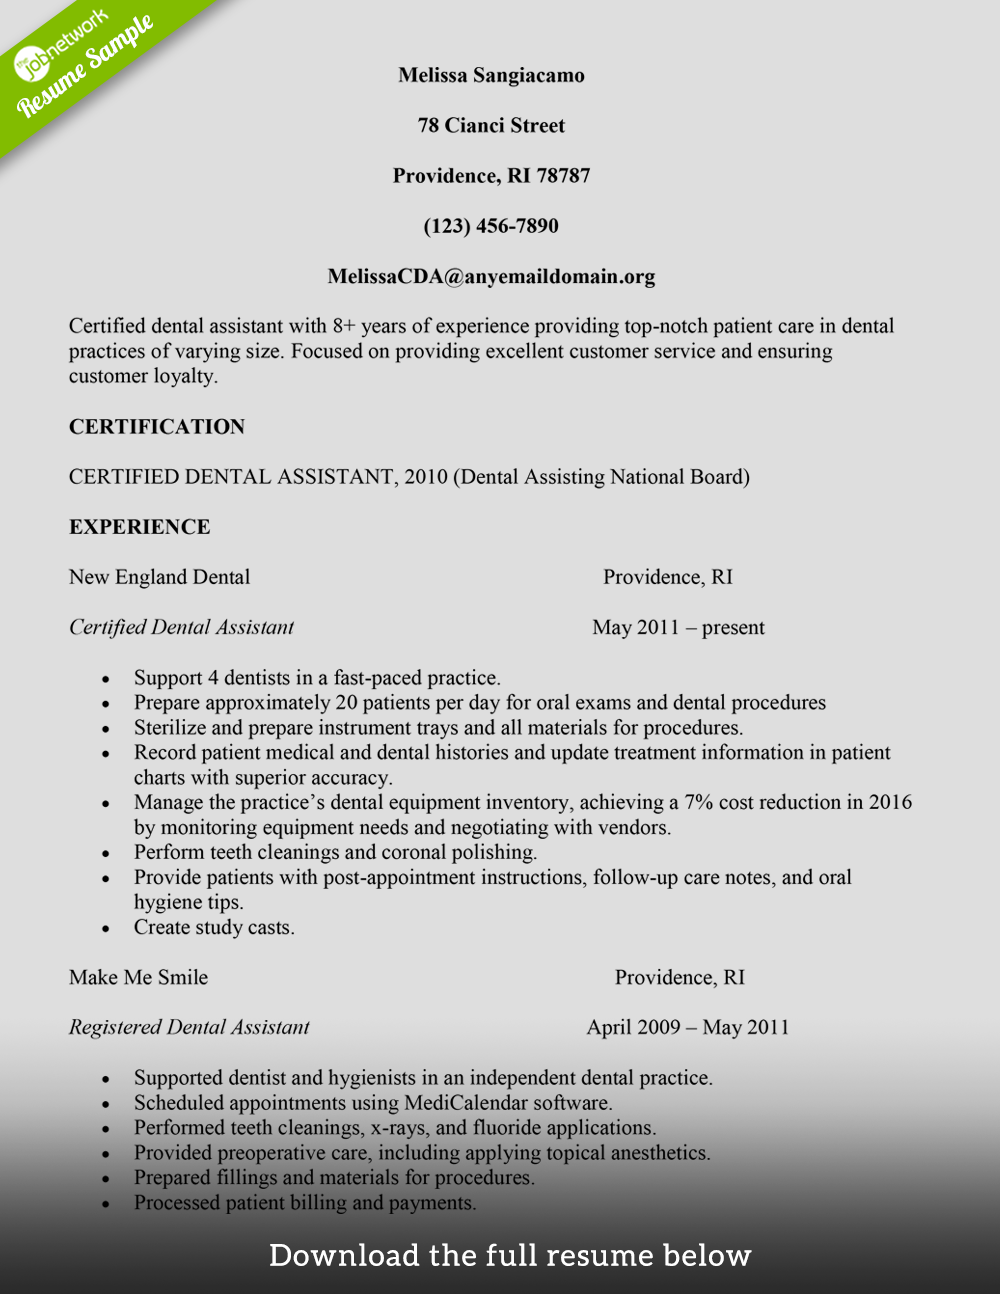 Great Resume Example | How To Build A Great Dental Assistant Resume Examples Included